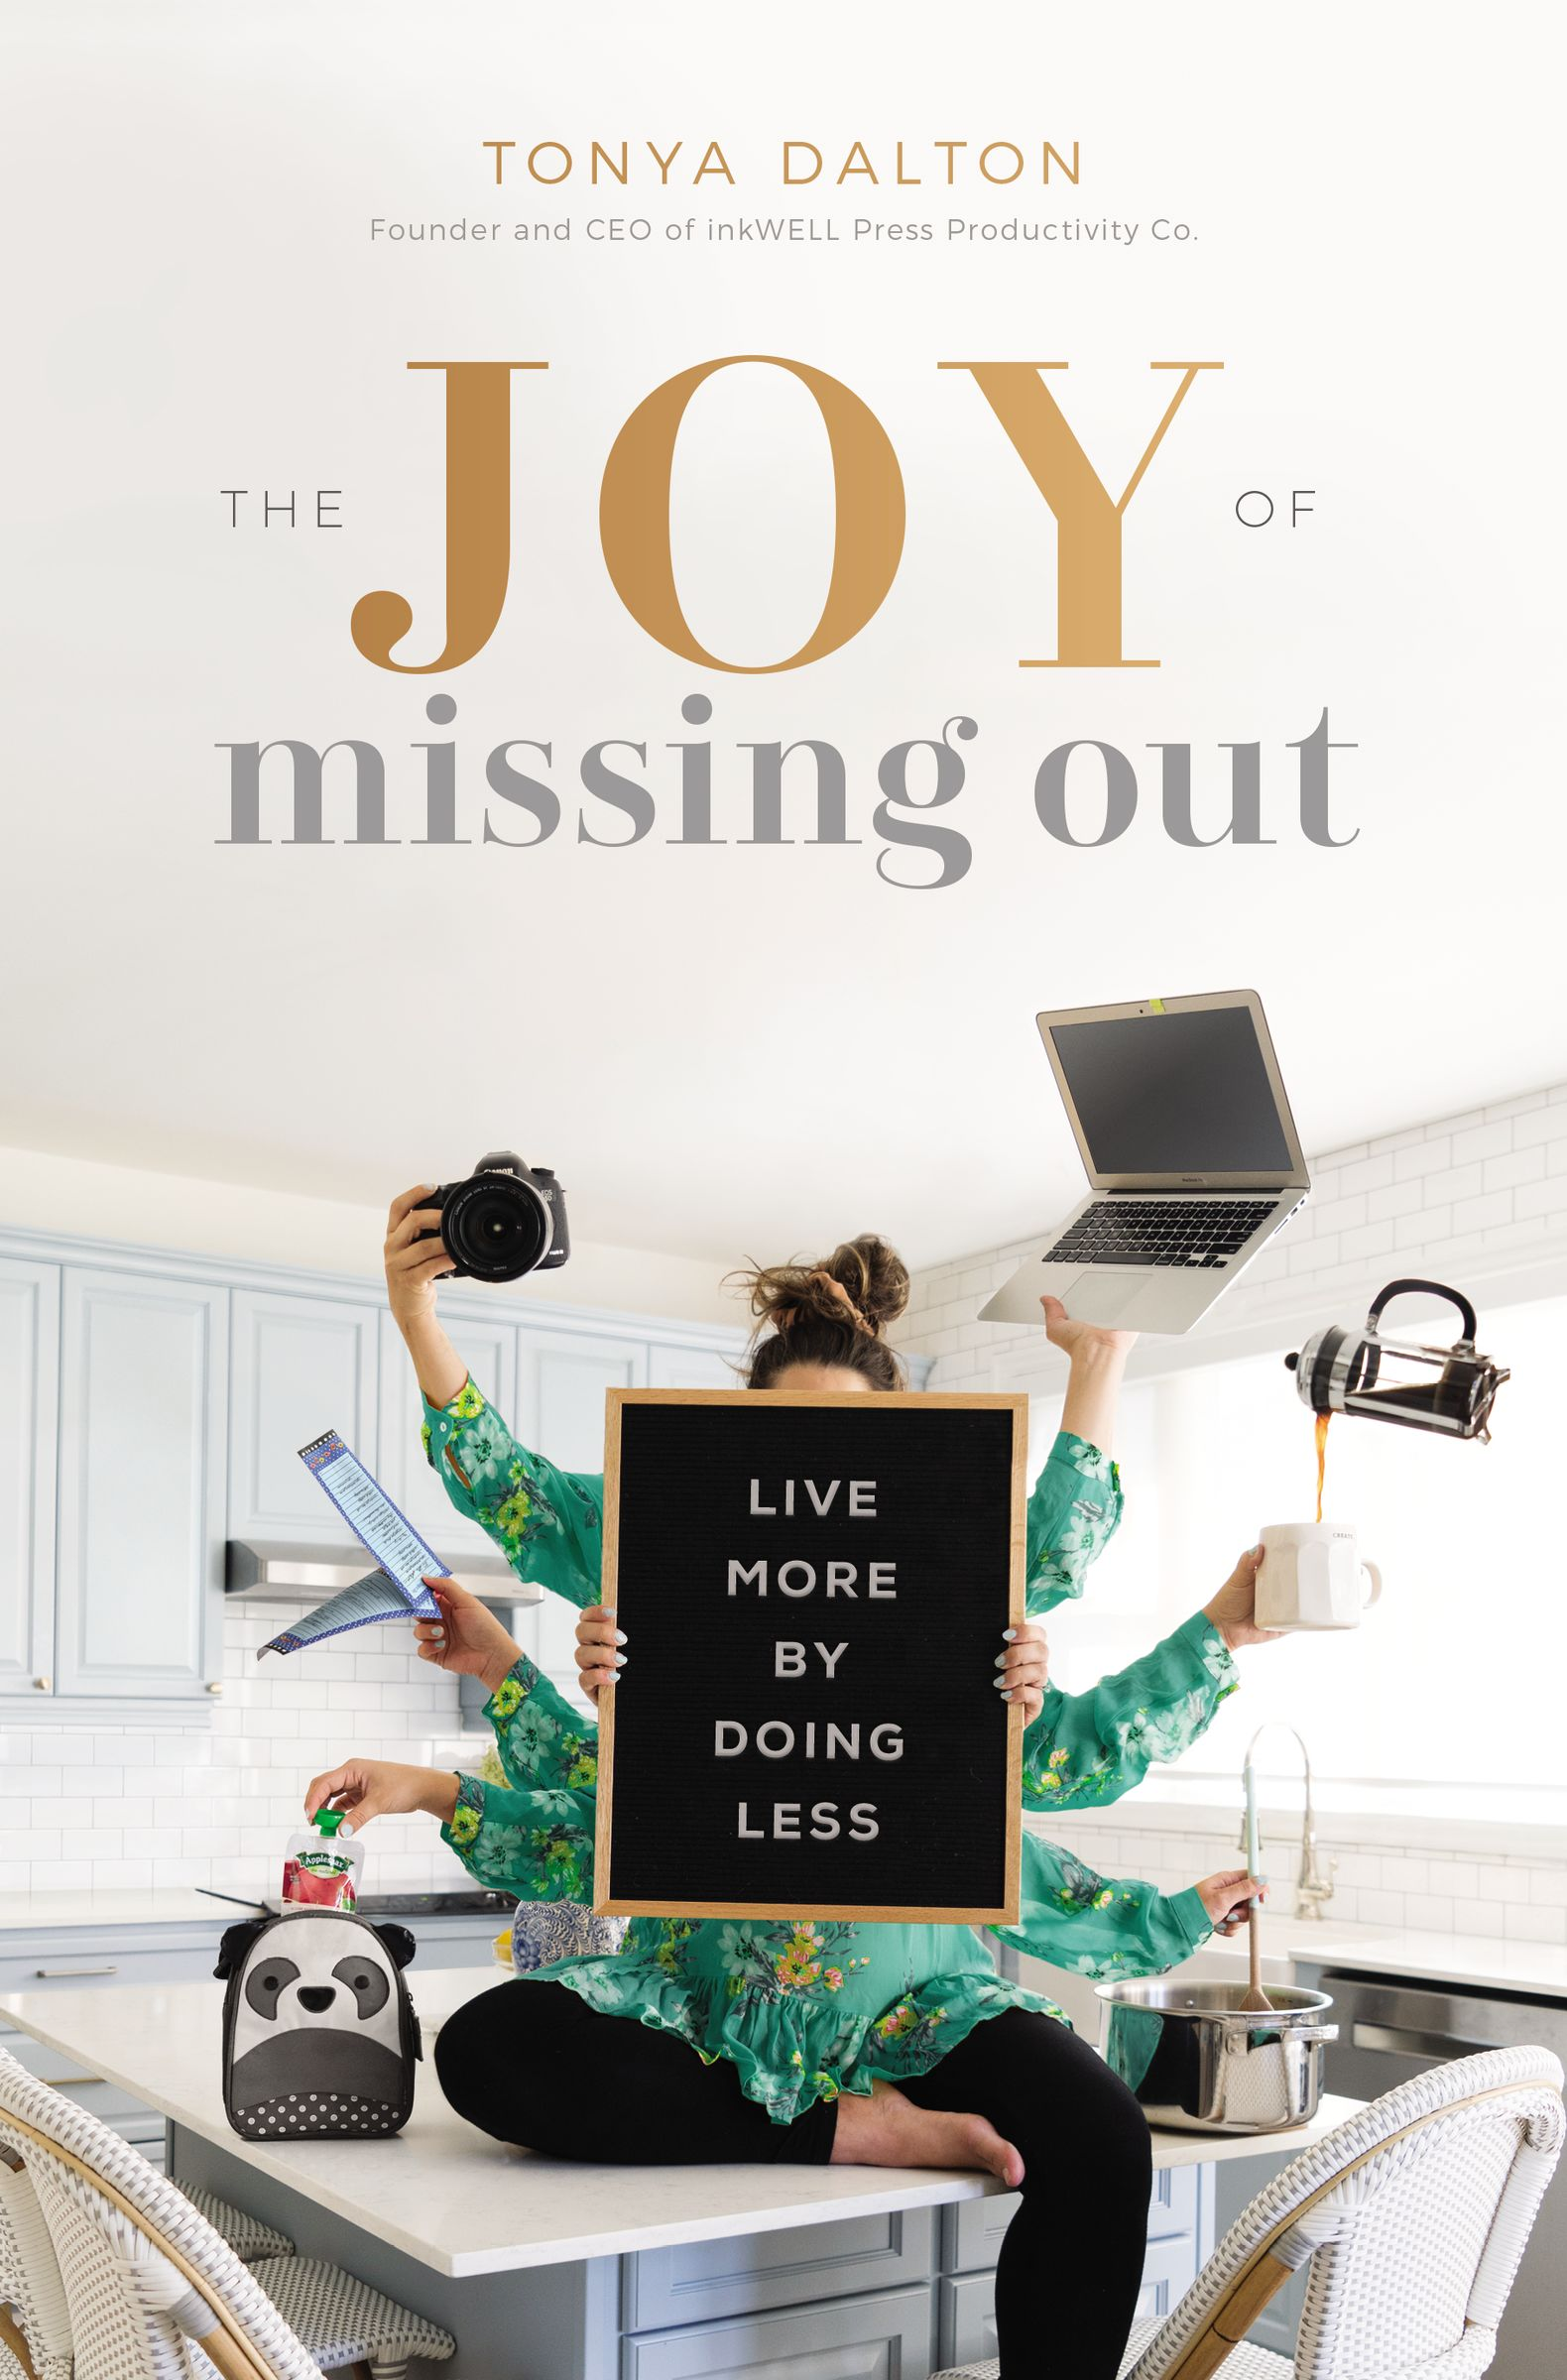 The Joy of Missing Out by Tonya Dalton